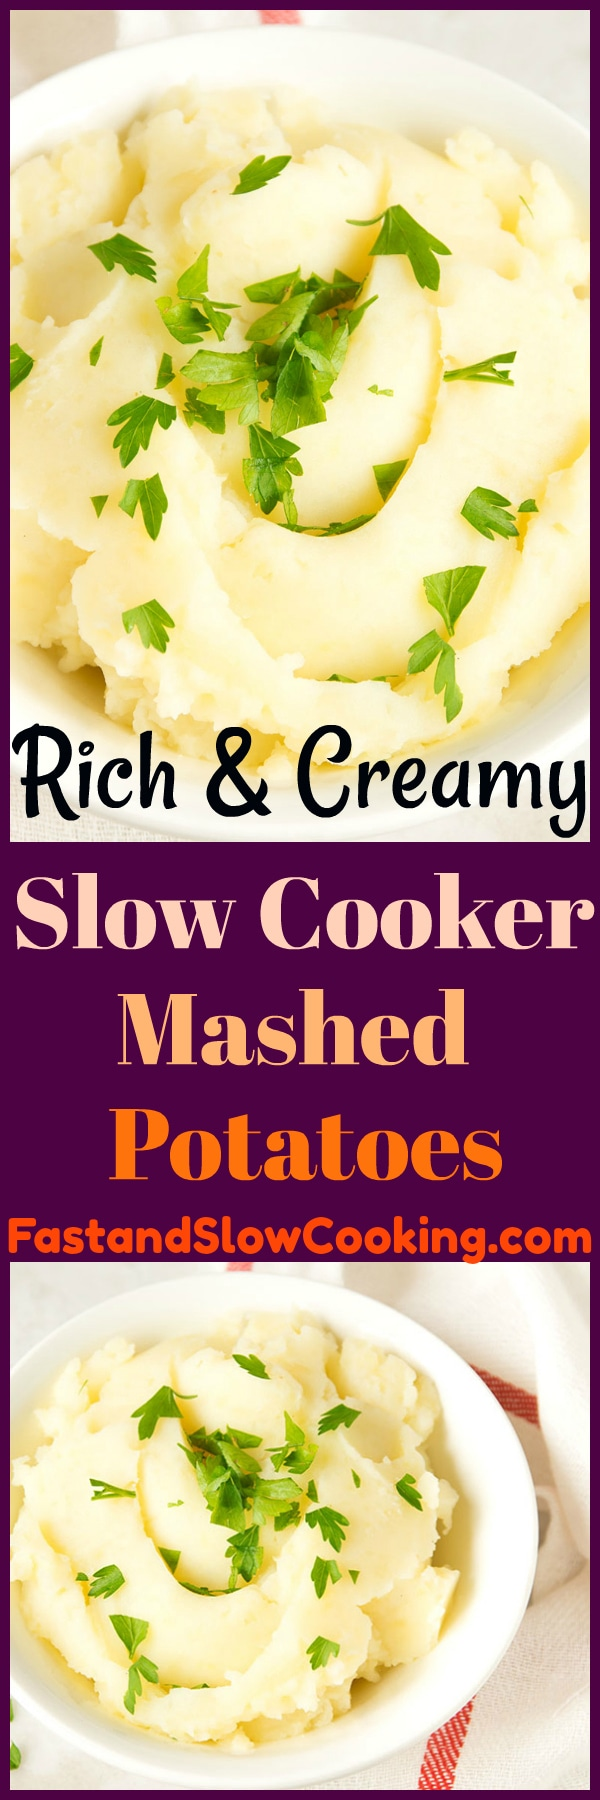 Sour cream and cream cheese truly make these the best Rich & Creamy Slow Cooker Mashed Potatoes you will ever make! Perfect for your holiday dinner! #slowcooker #mashedpotatoes #crockpot #recipe